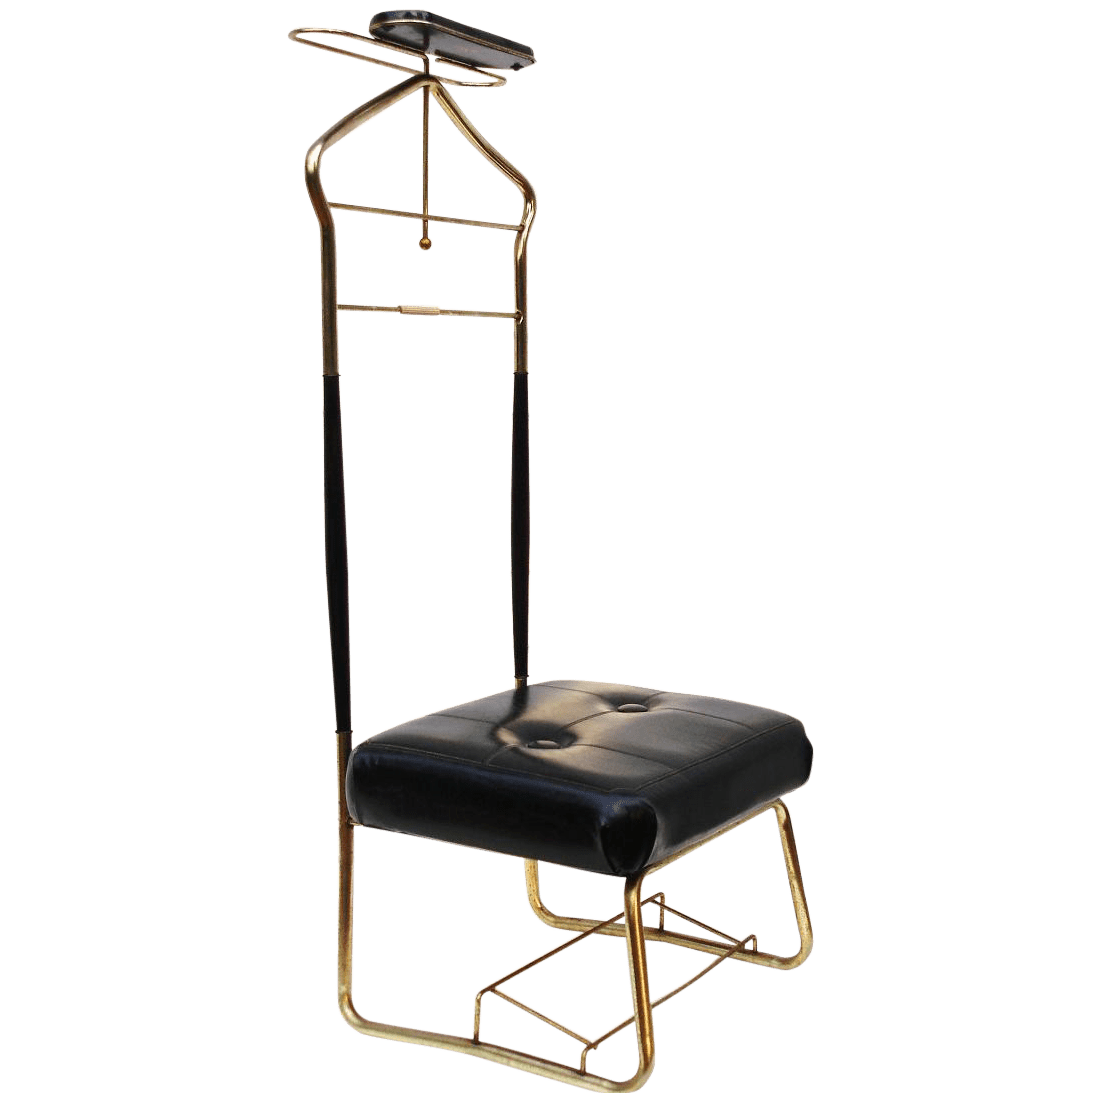 MCM Brass Butler Stand Valet Chair  Chairish